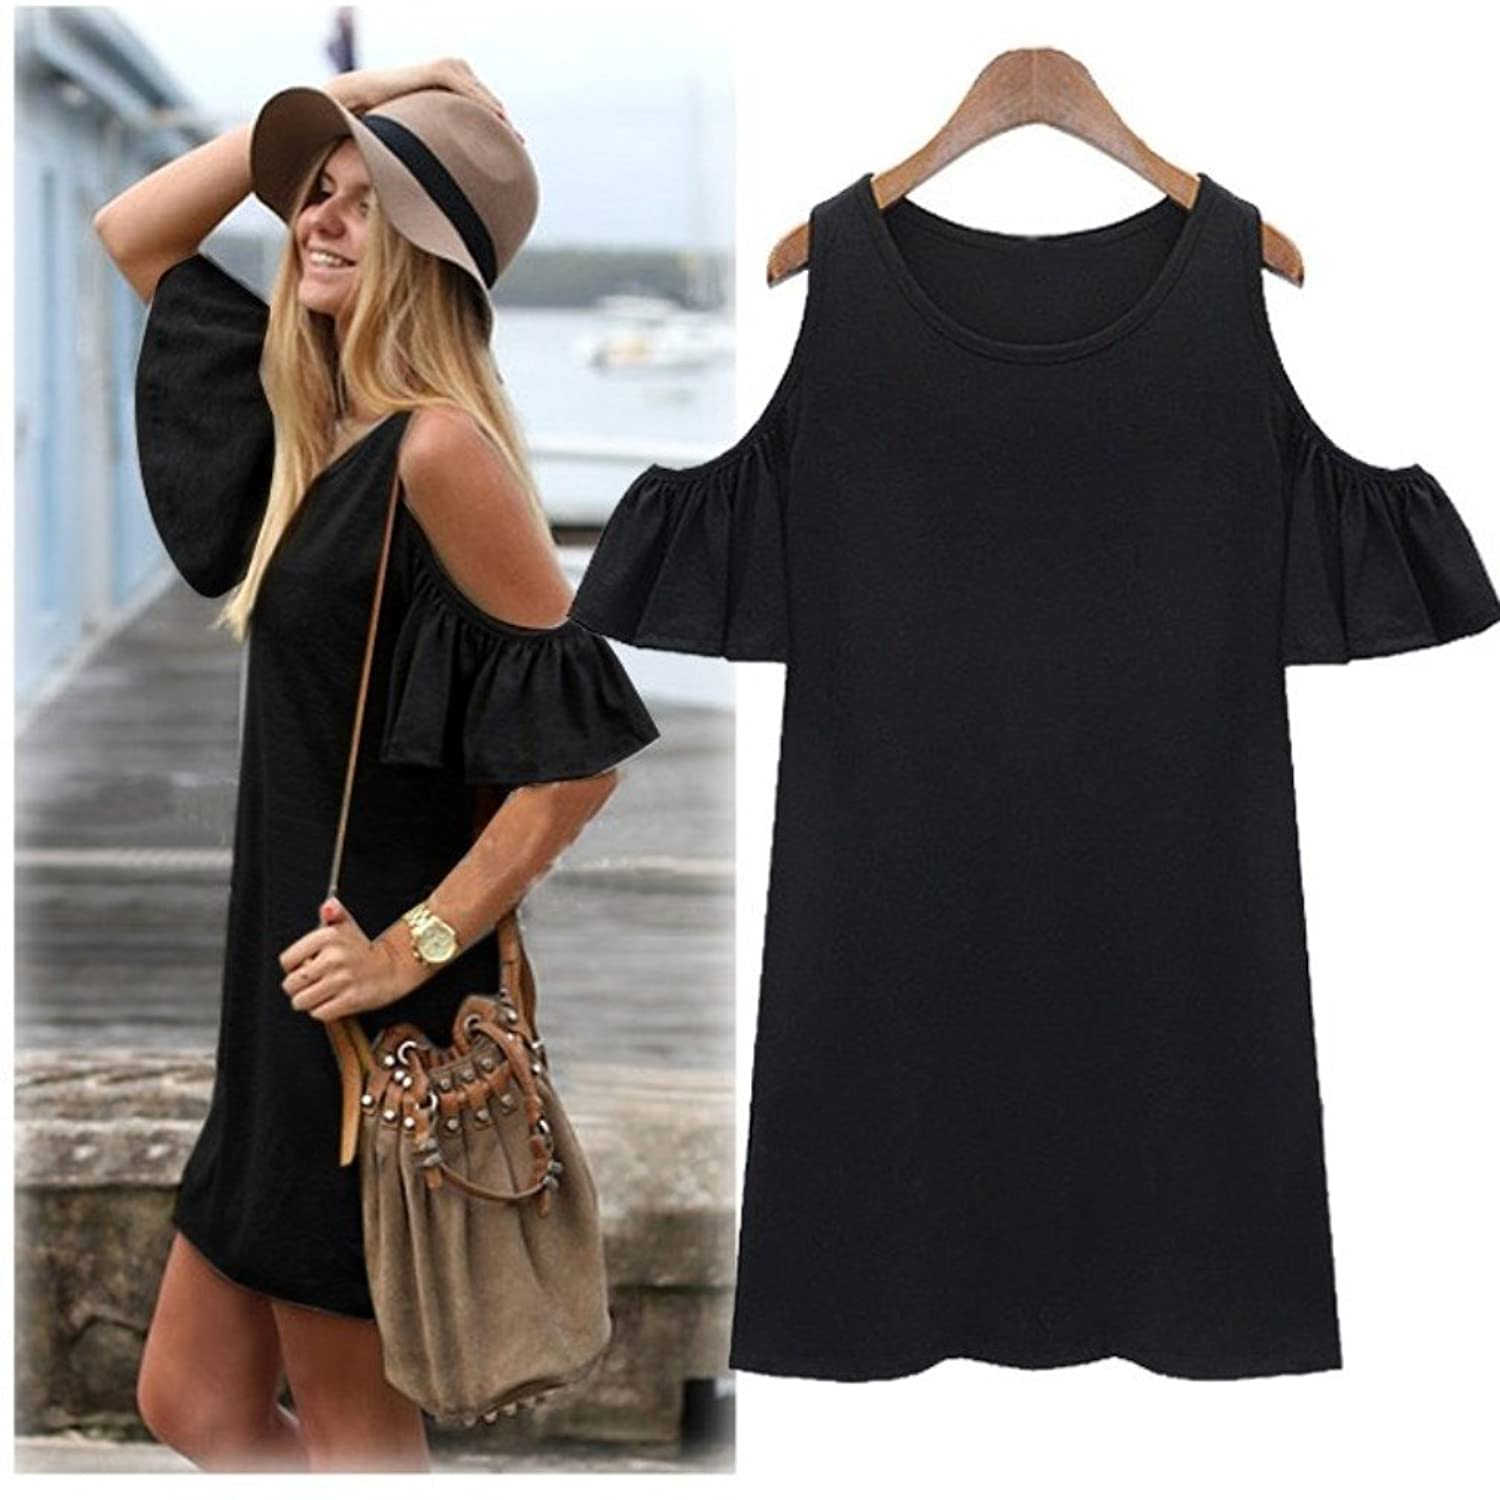 Boho Tunics uk Tunic Dress Long Boho Top